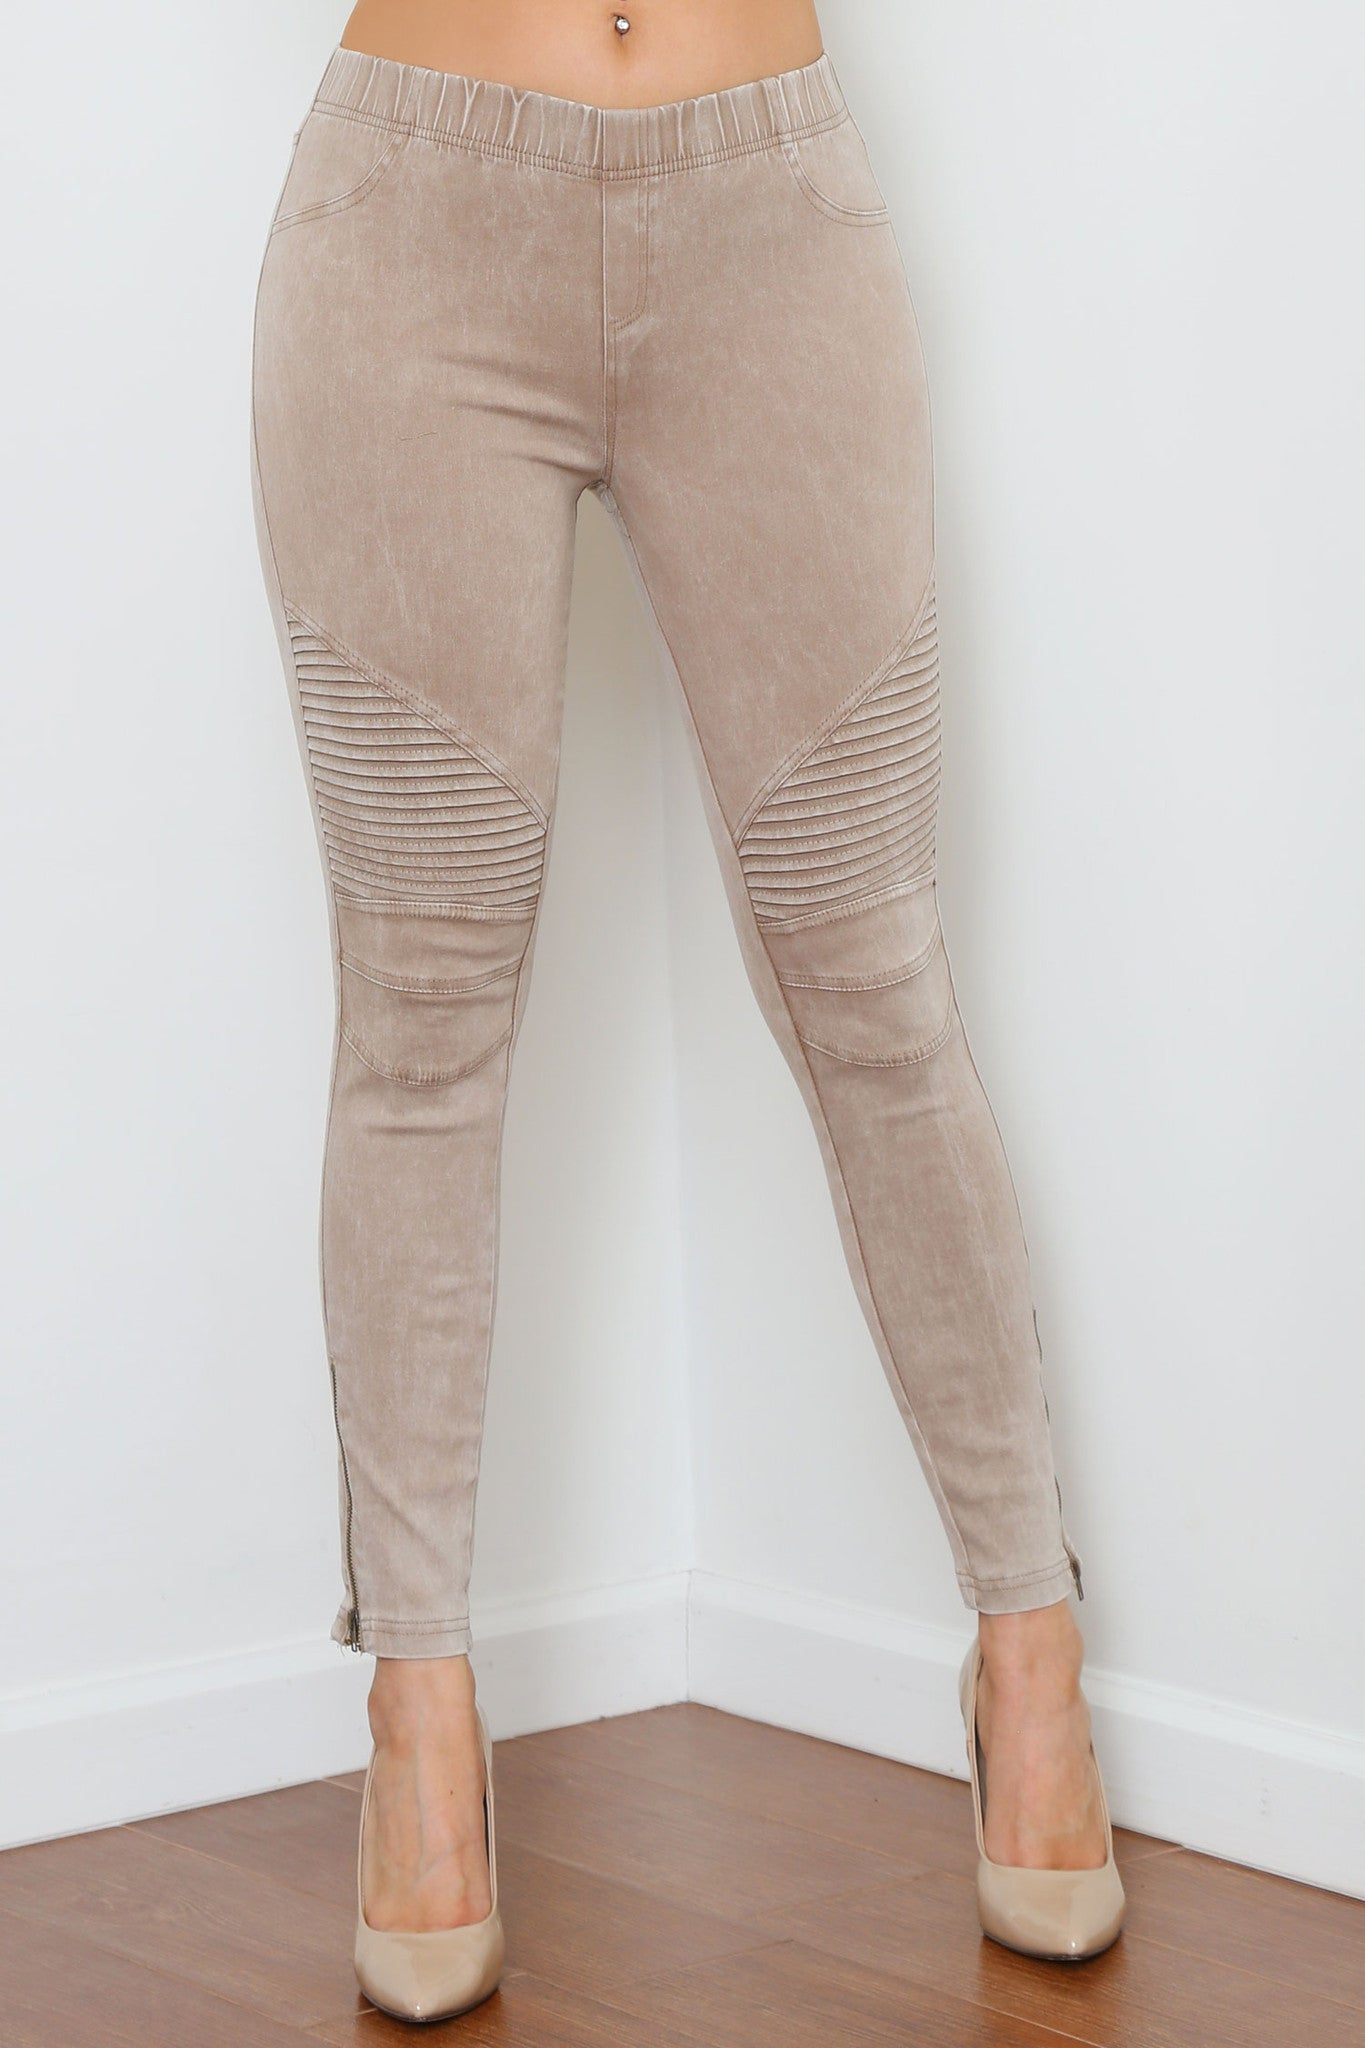 JADE LEGGINGS - Glam Envy - 1